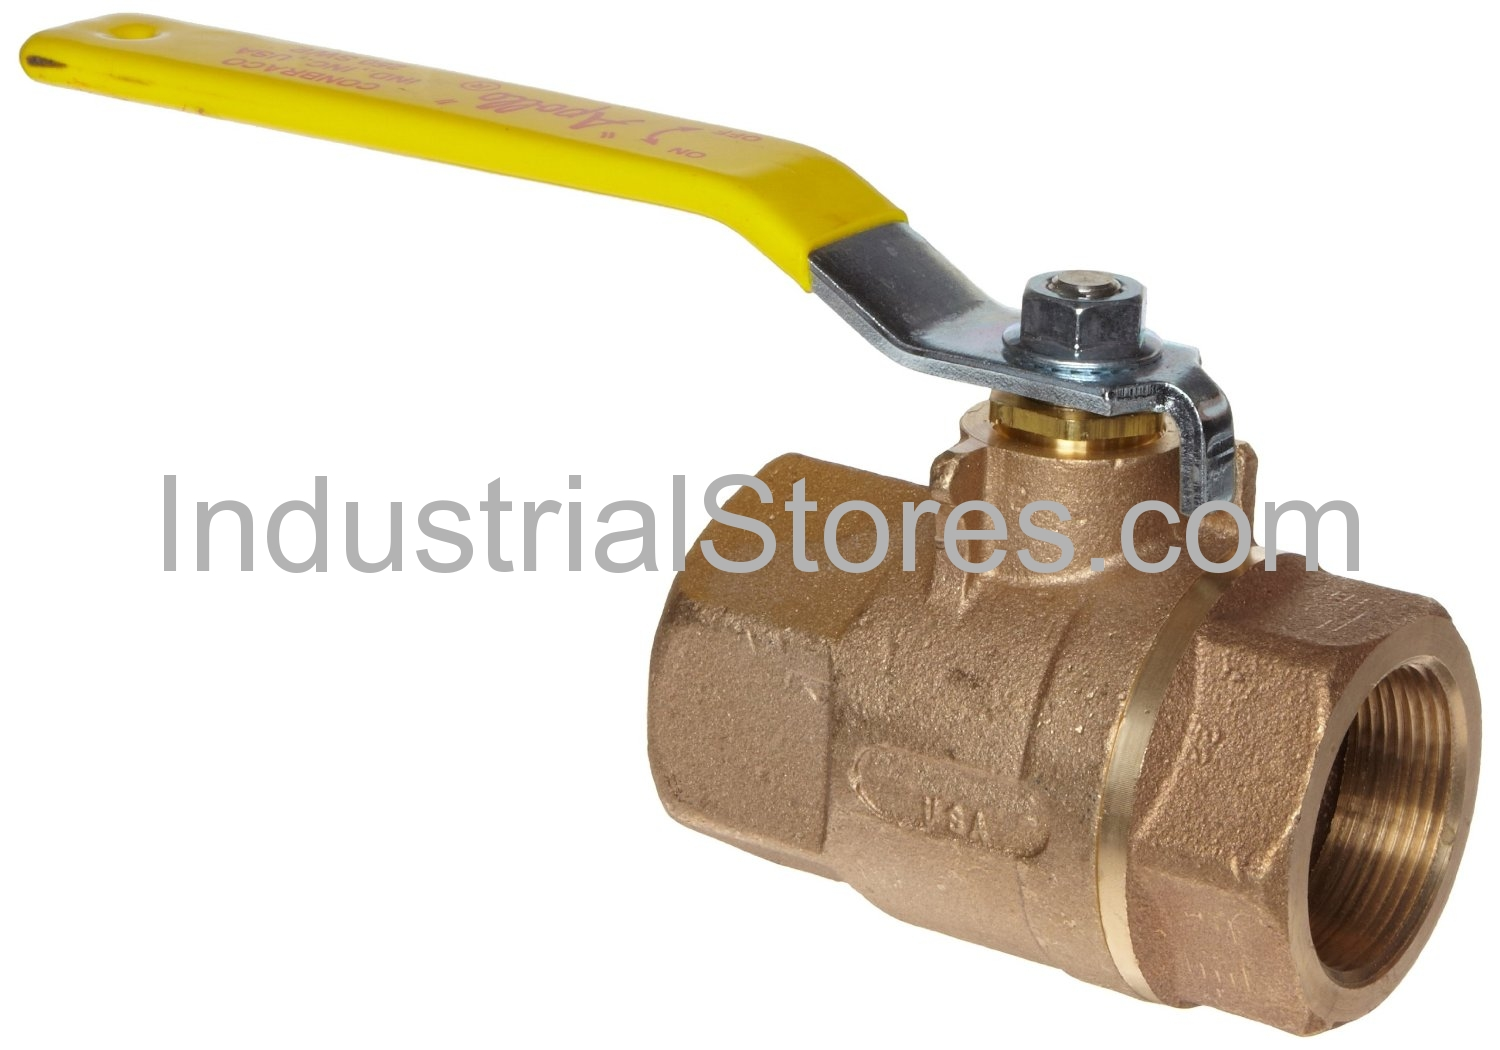 Conbraco 94A-104-01 Forged Brass Ball Valve 3/4""